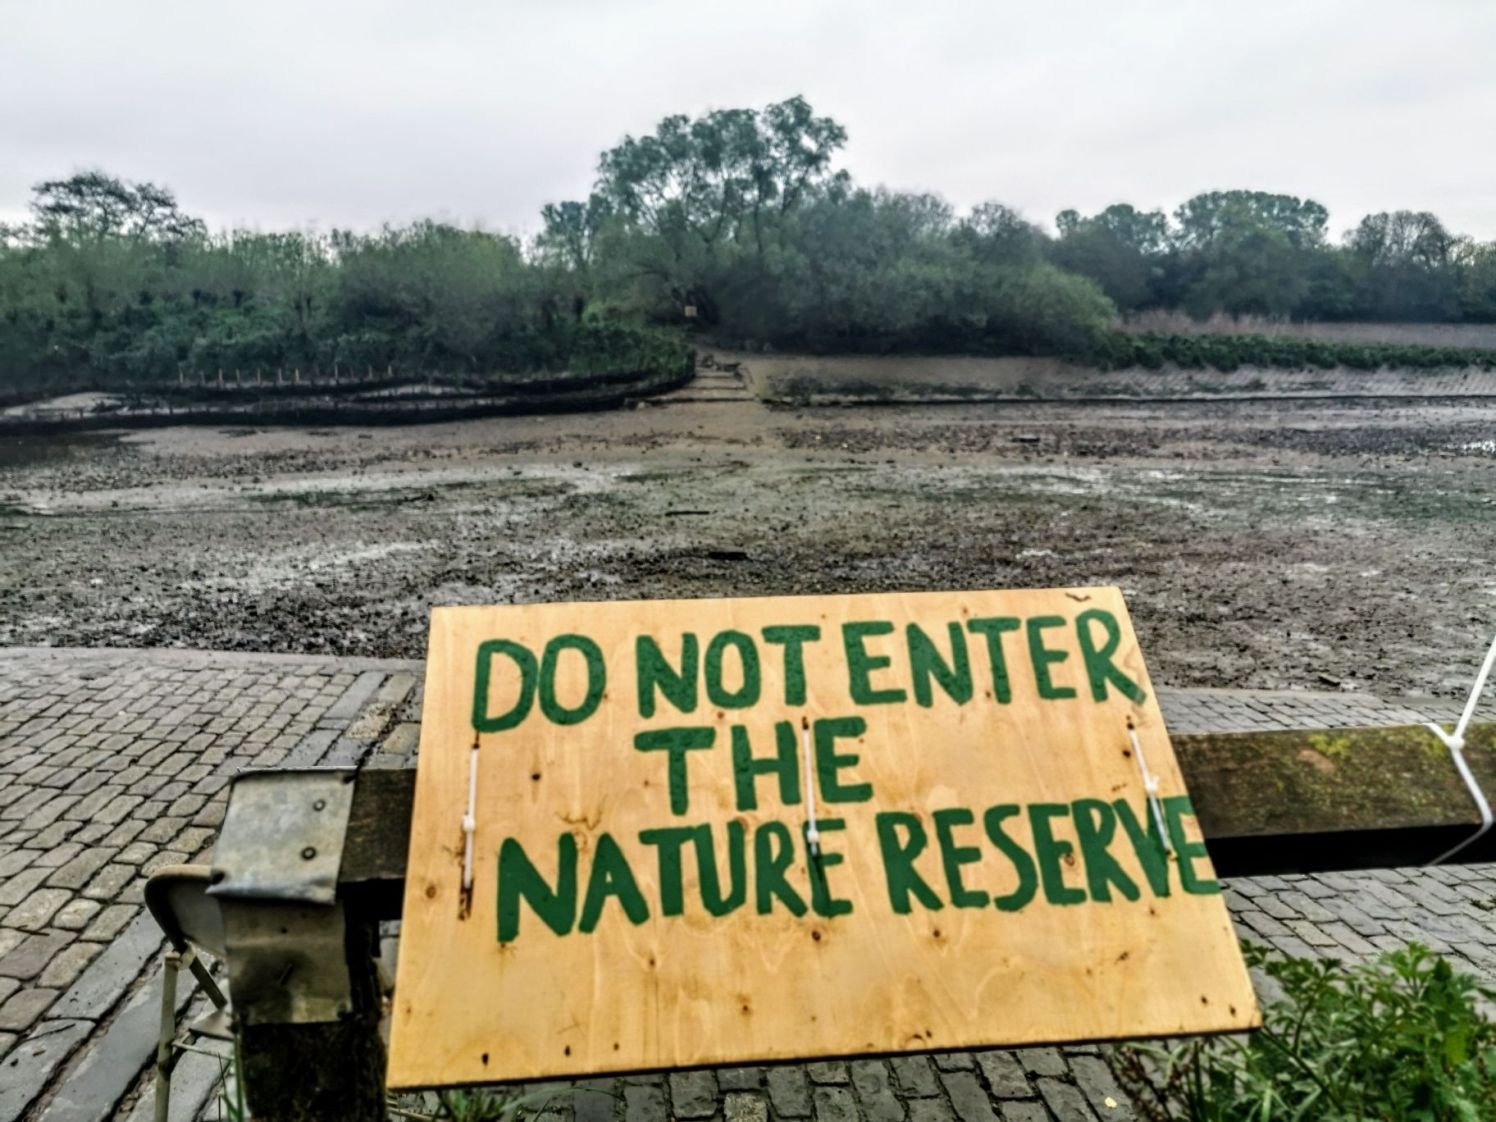 No Not Enter the Nature Reserve